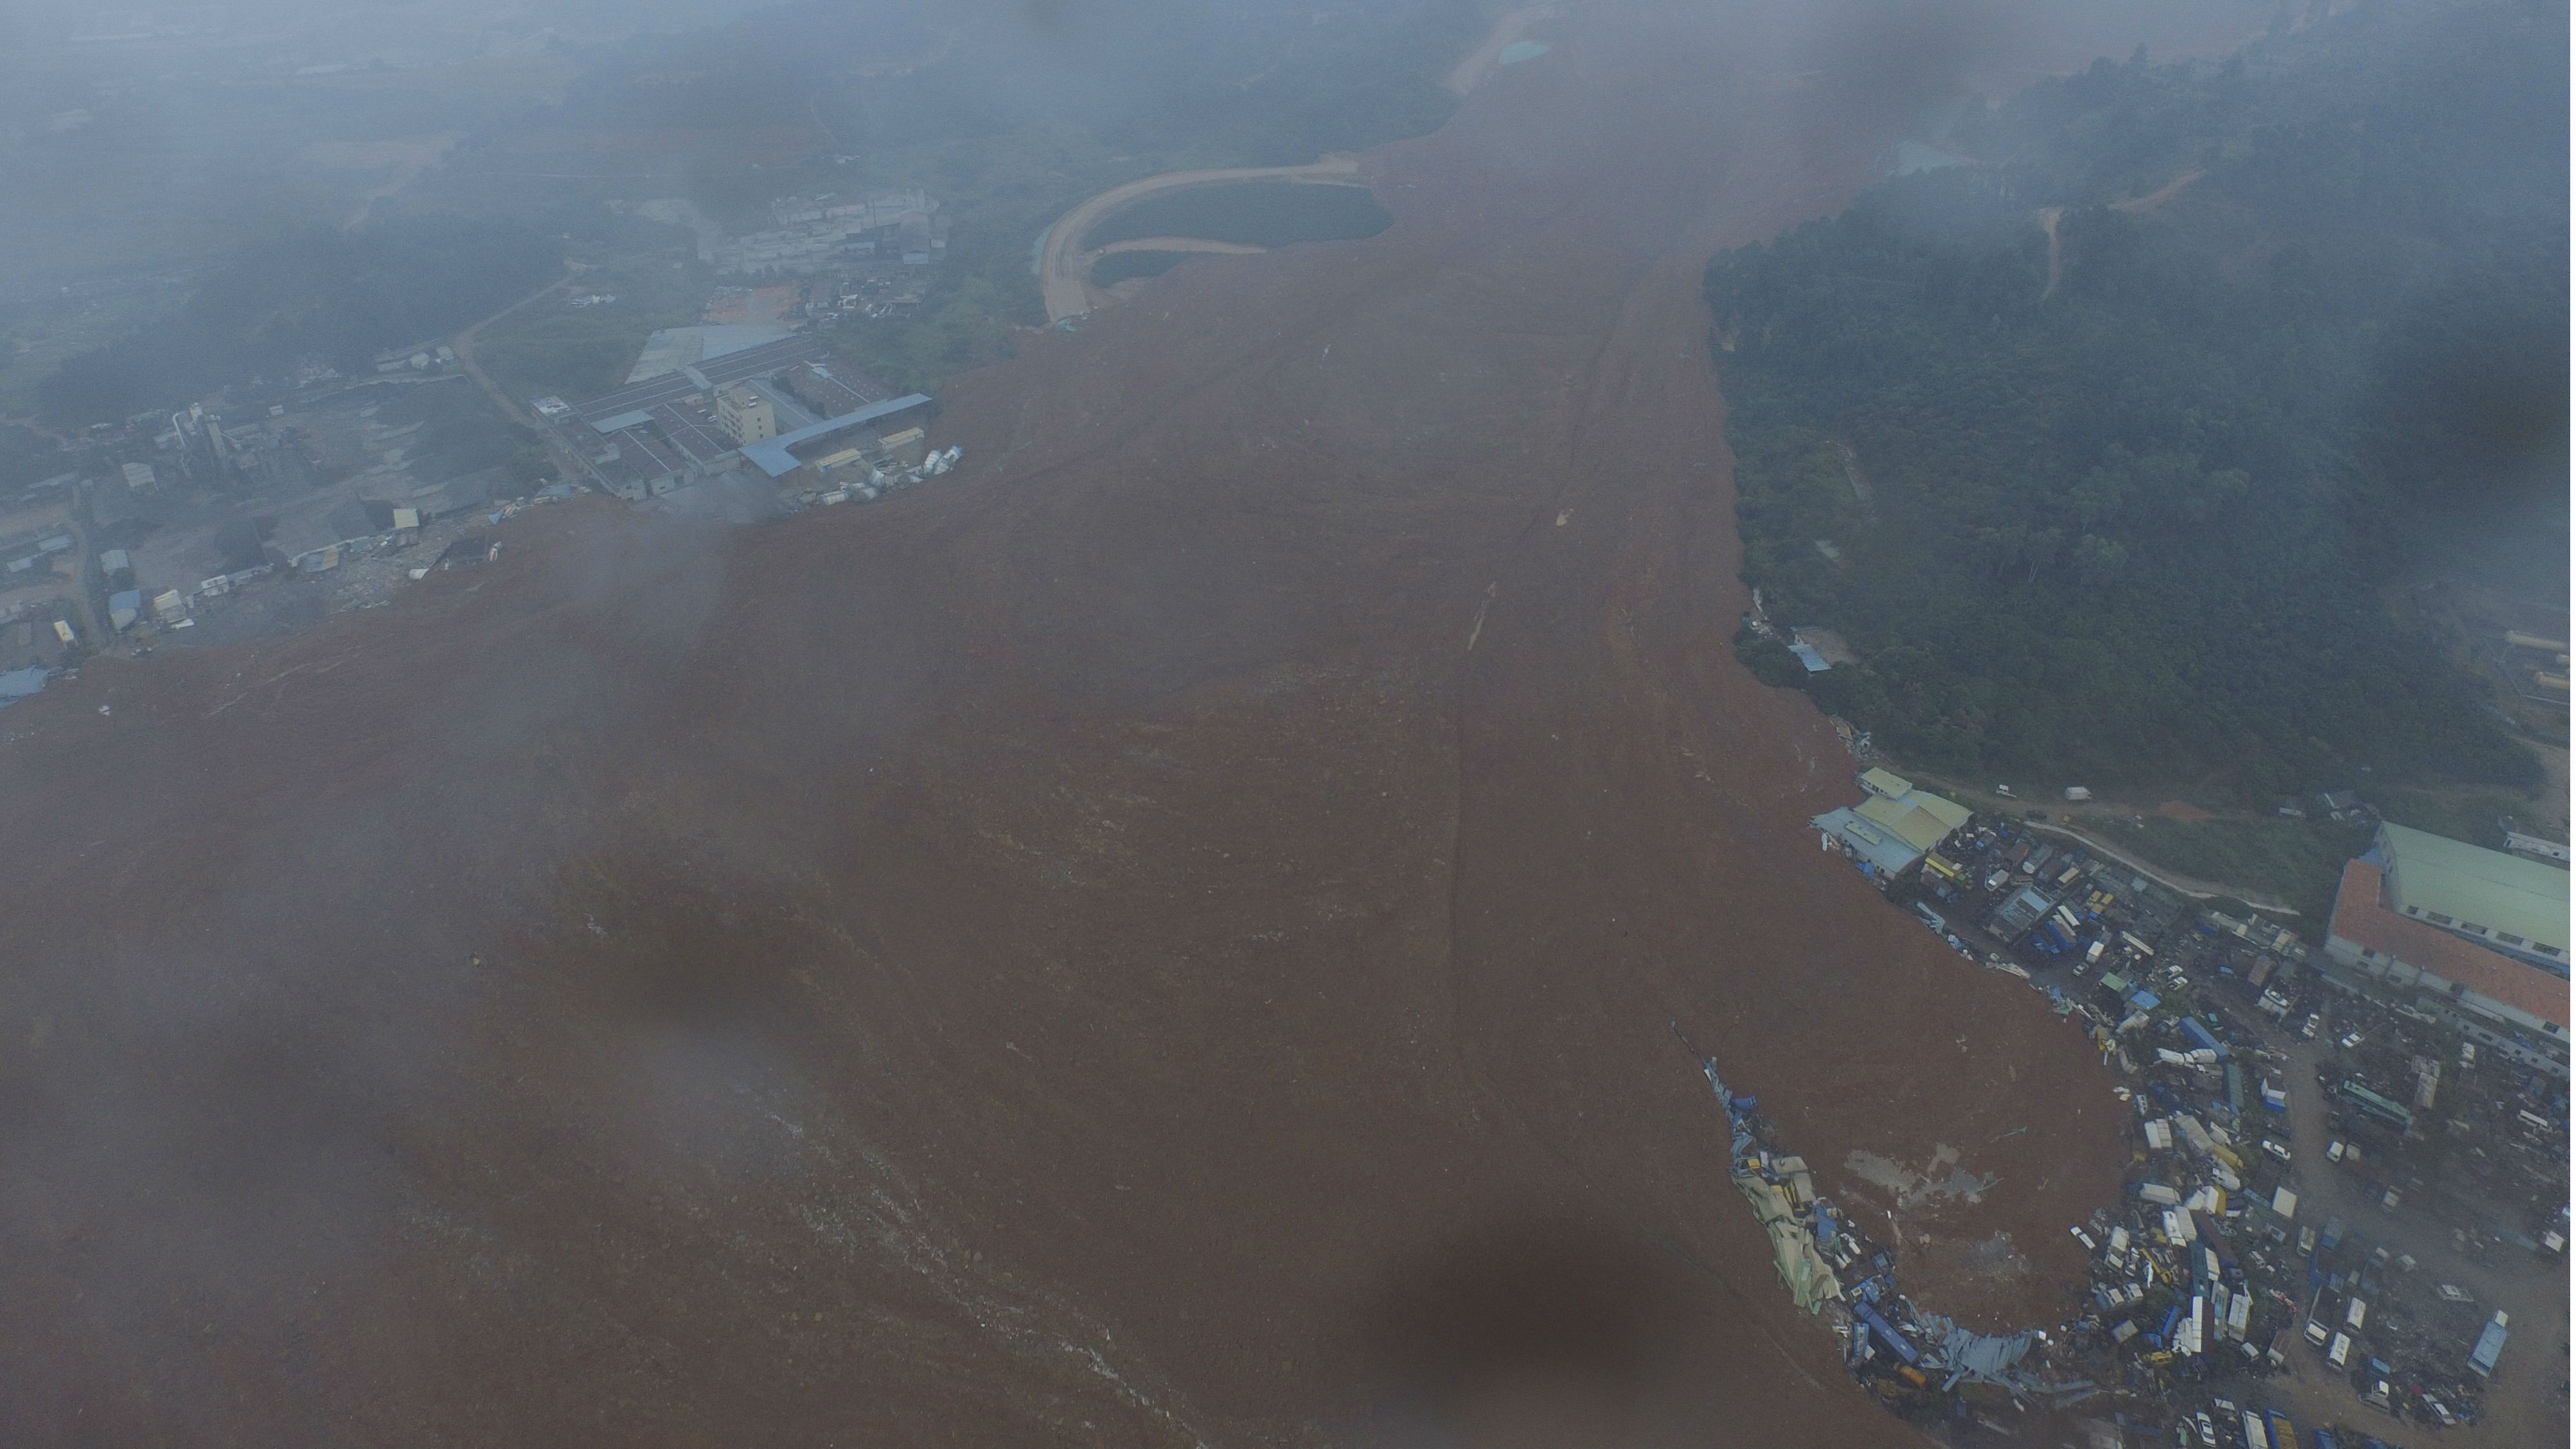 An aerial view shows the site of a landslide at an industrial park in Shenzhen, Guangdong province, China, December 20, 2015. REUTERS/Stringer